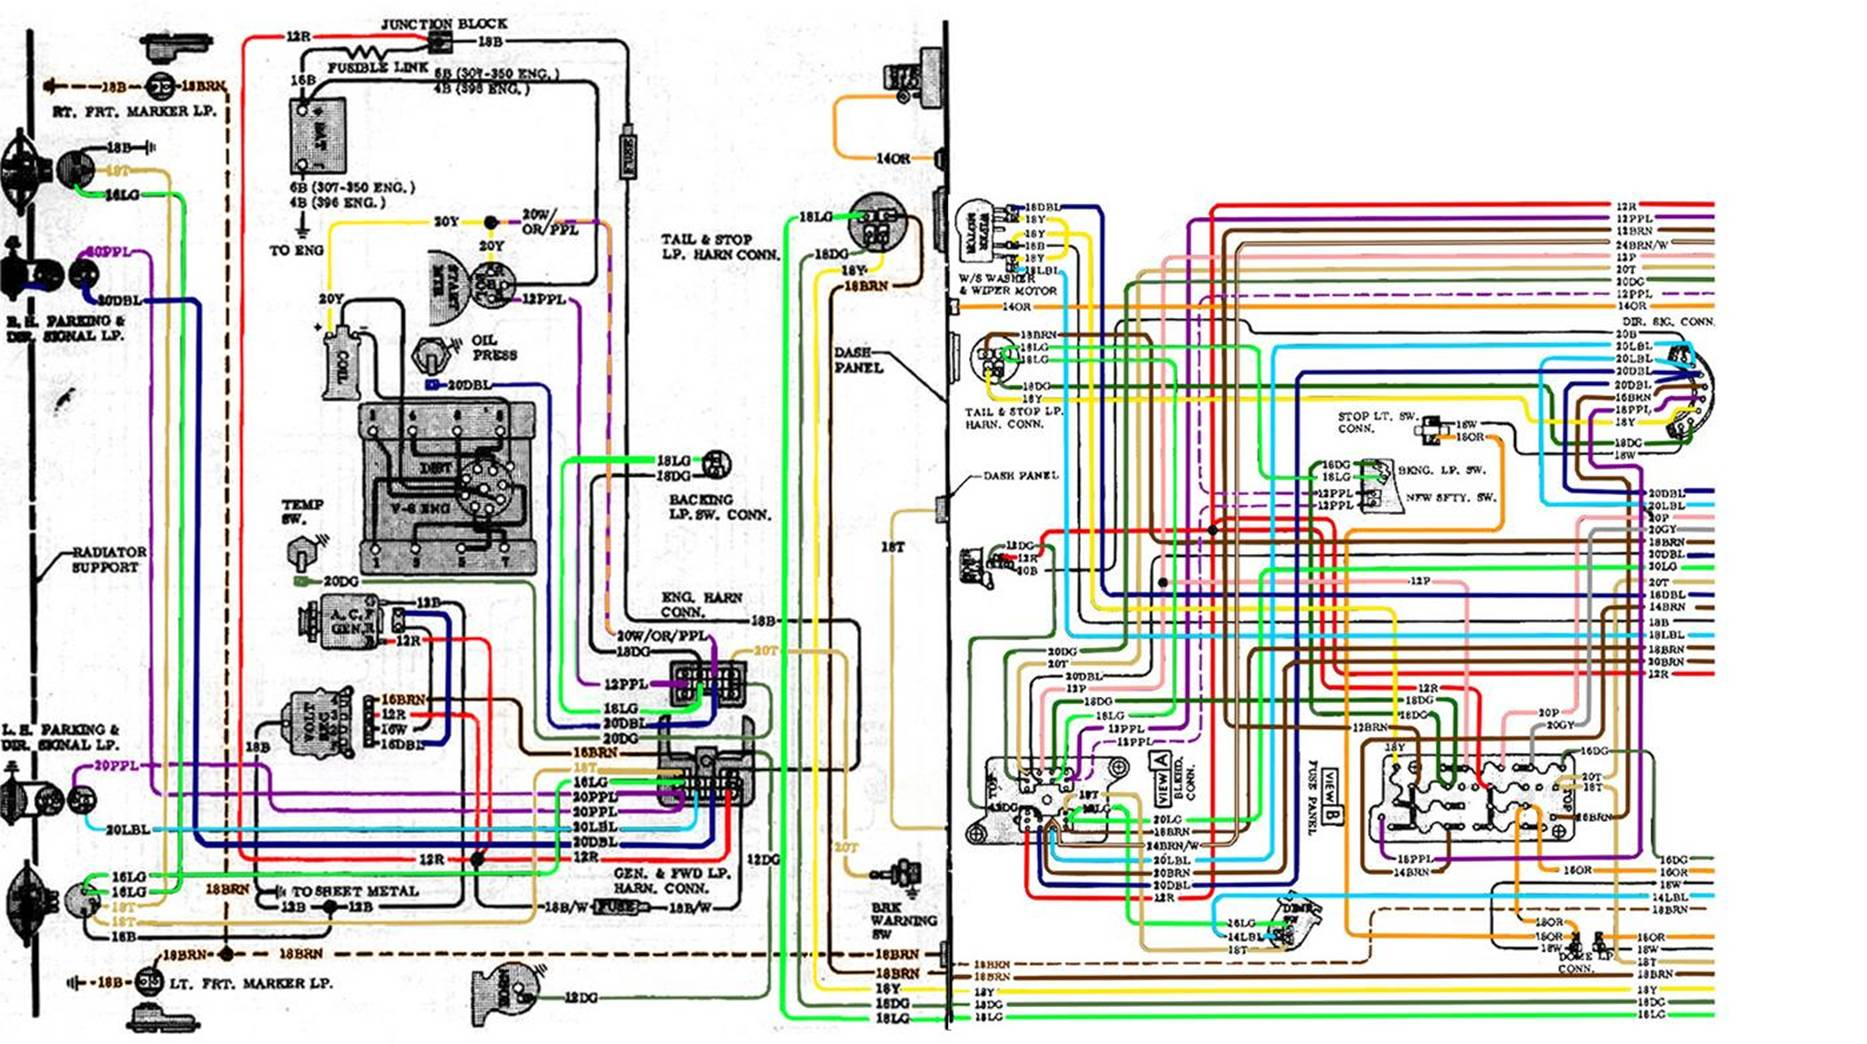 1967 Chevy C20 Wiring Diagram Another Blog About To Car Boss Harness Stereo Socesche 67 72 Rh Outintheshop Com